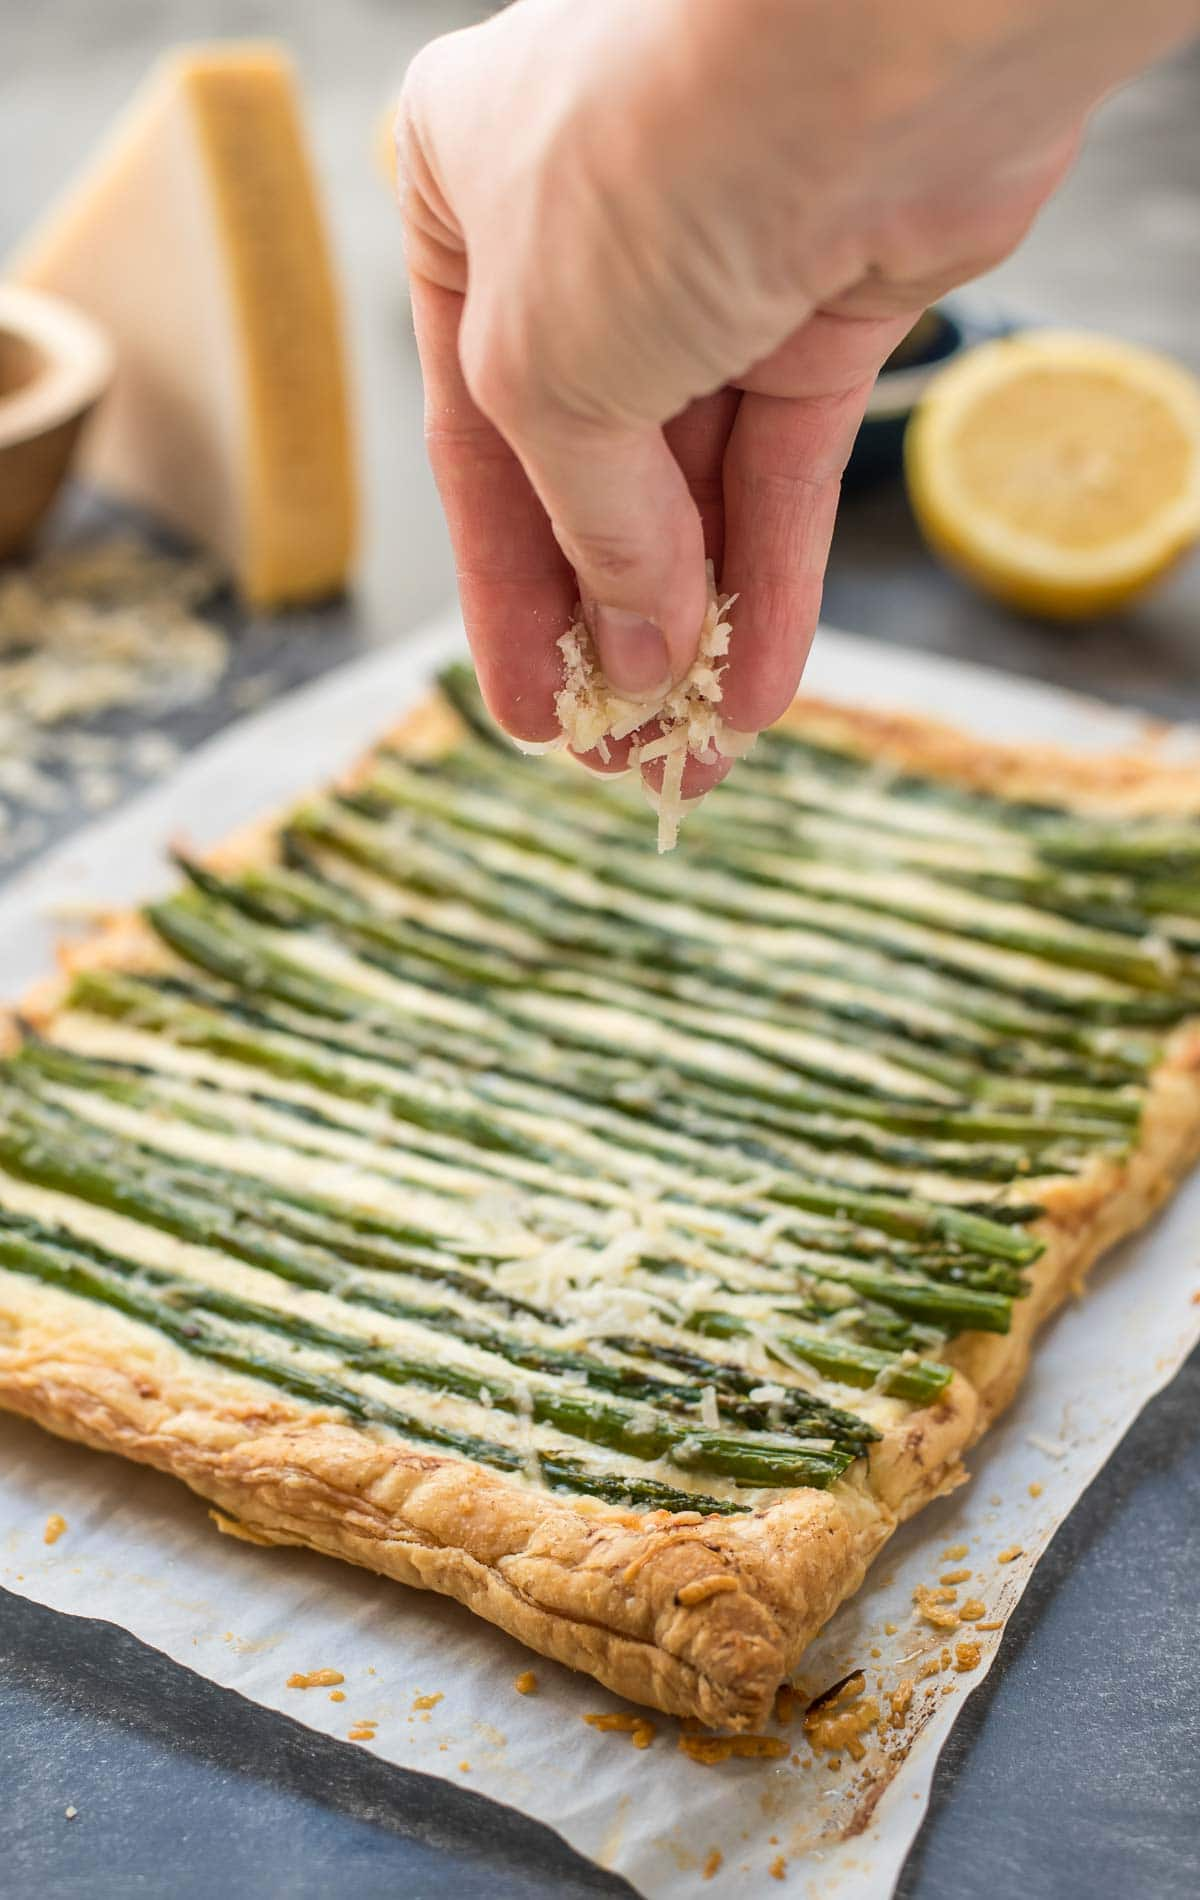 Looking for a quick, elegant appetizer? This Parmesan Asparagus Tart is just the thing!